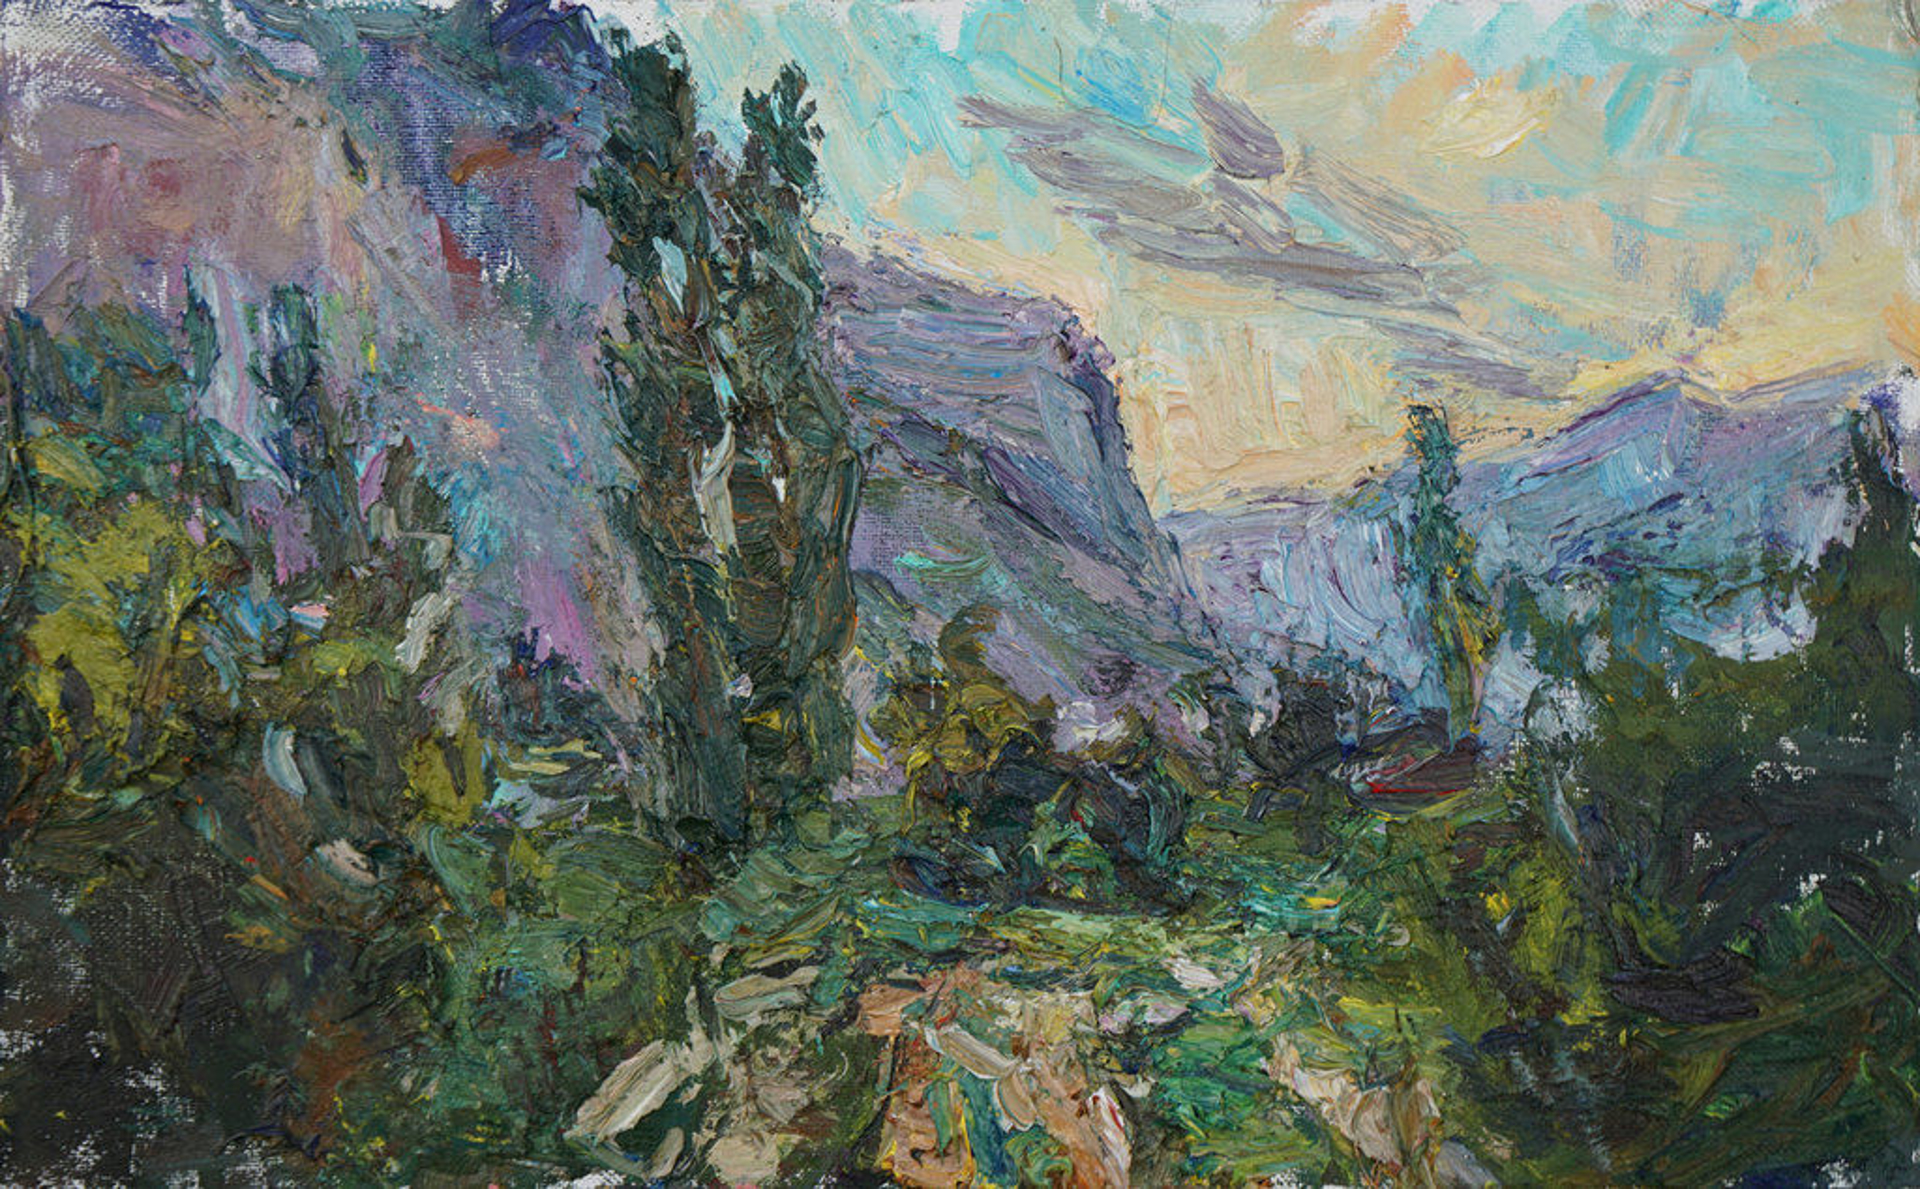 Southern Landscape (Sunrise in the Caucasus) by Ulrich Gleiter